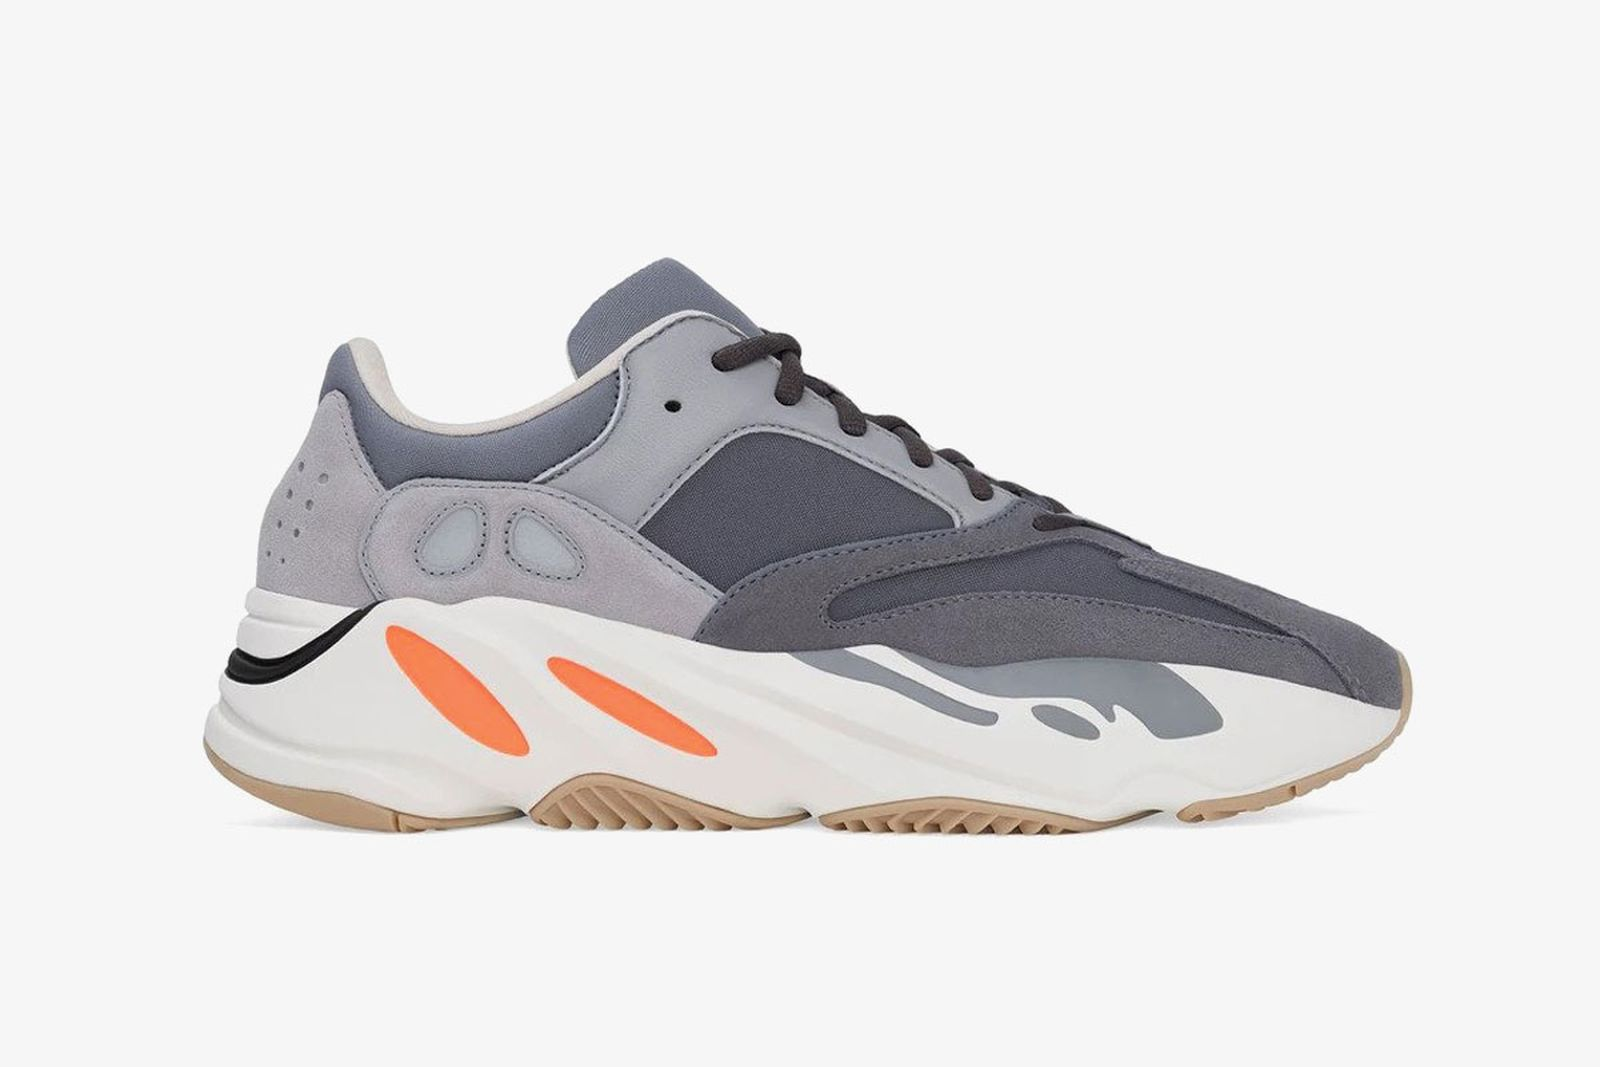 adidas yeezy boost 700 magnet release date price Grailed StockX adidas Originals YEEZY Boost